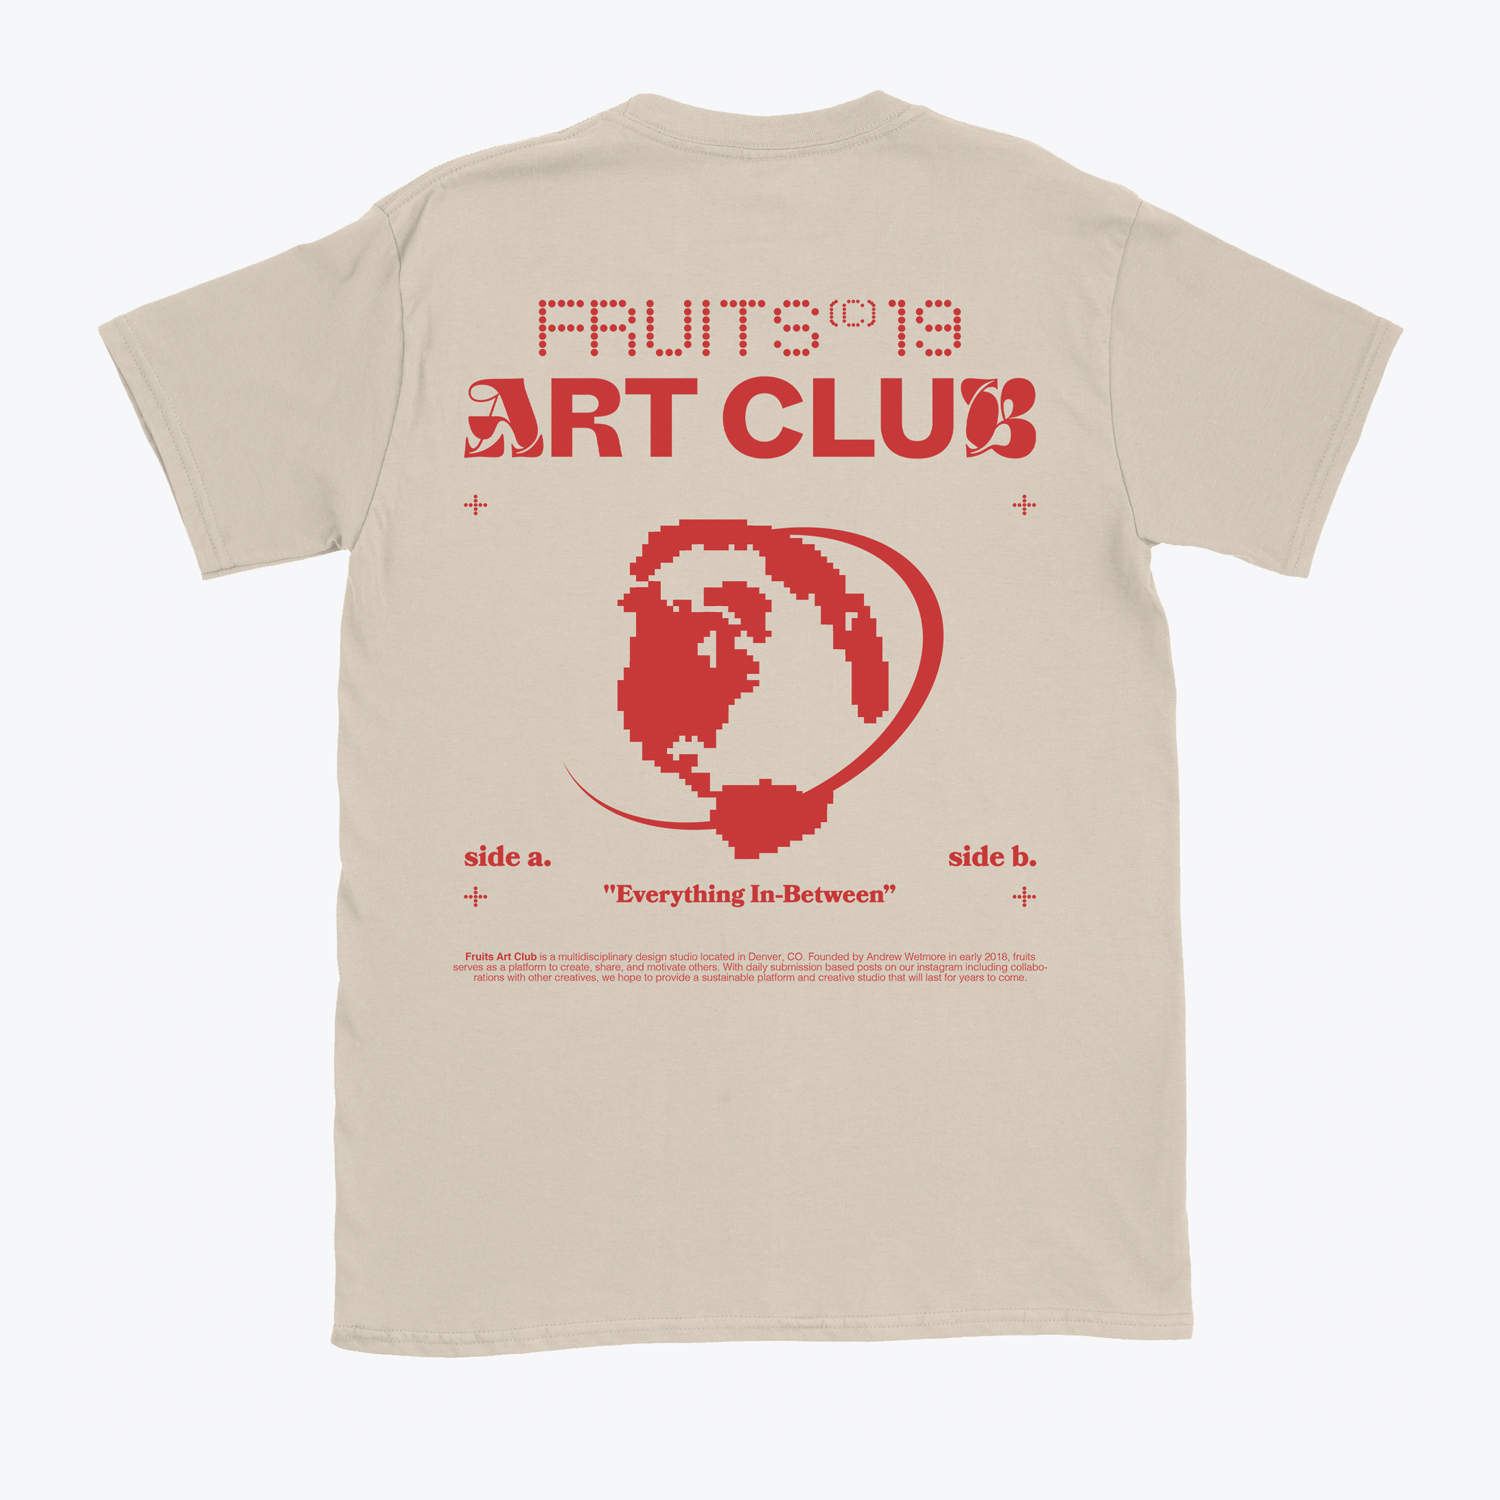 Fruits Art Club's 'Fruits F&F' T-shirt